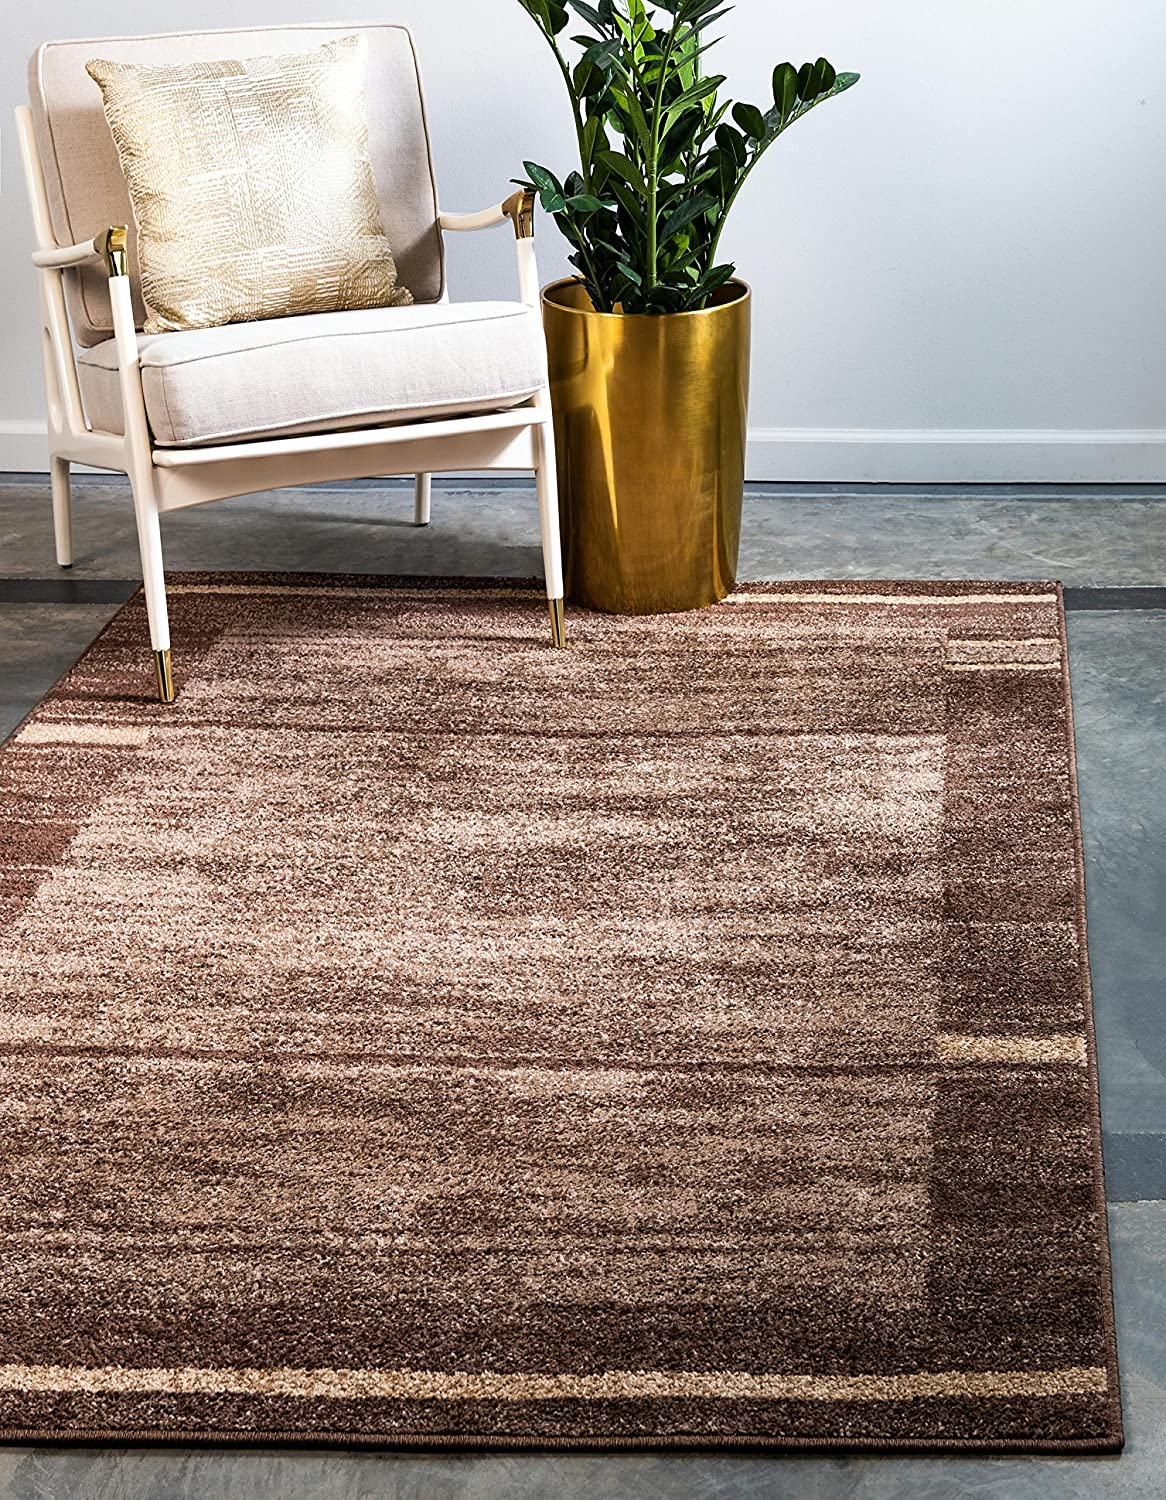 Unique Loom Autumn Collection Casual Border Rustic Warm Toned Brown Area Rug (8' 0 x 10' 0)